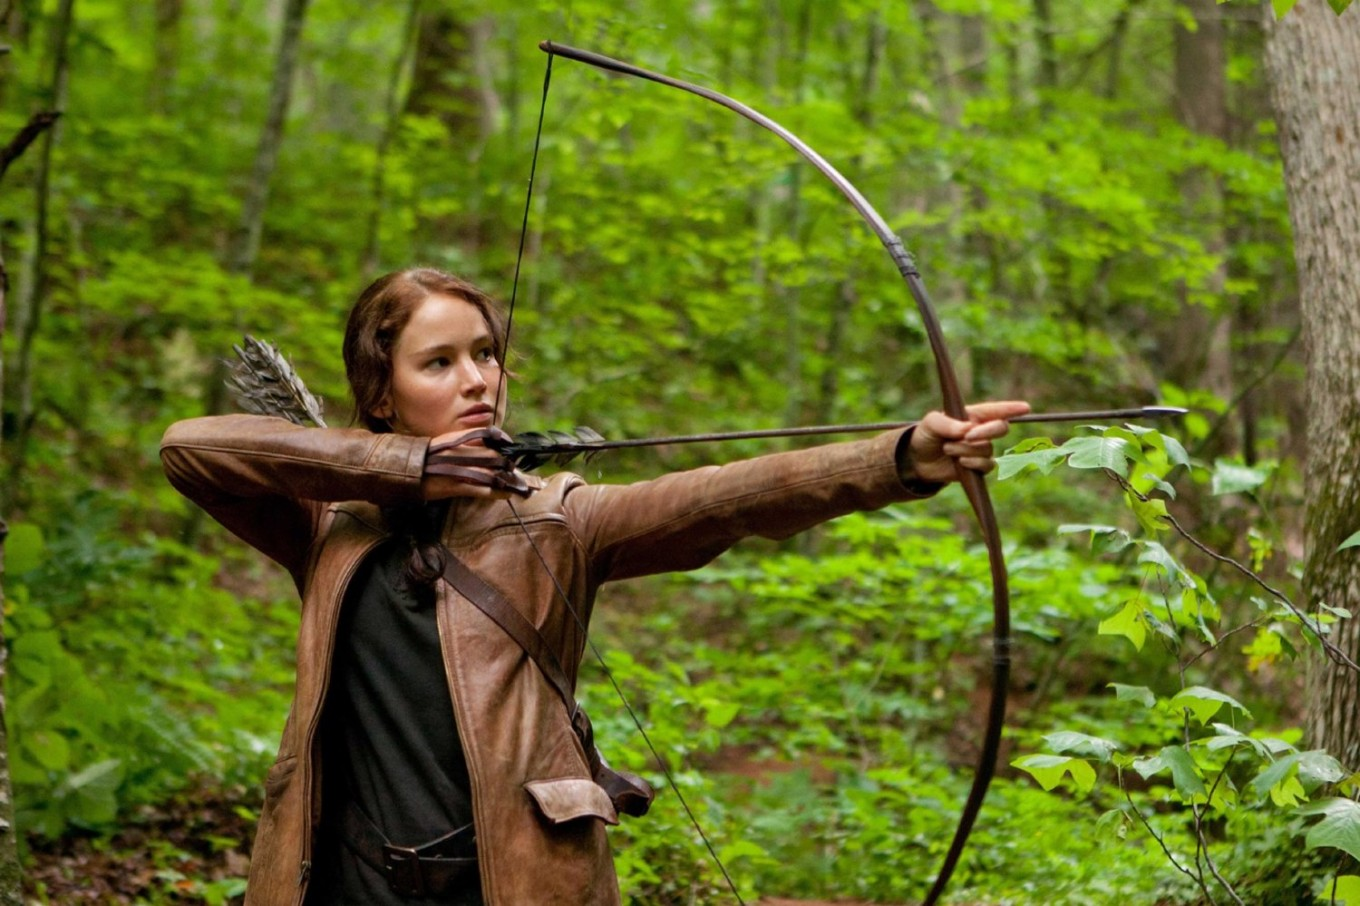 'Hunger Games', 'Divergent' attractions to open this summer in China